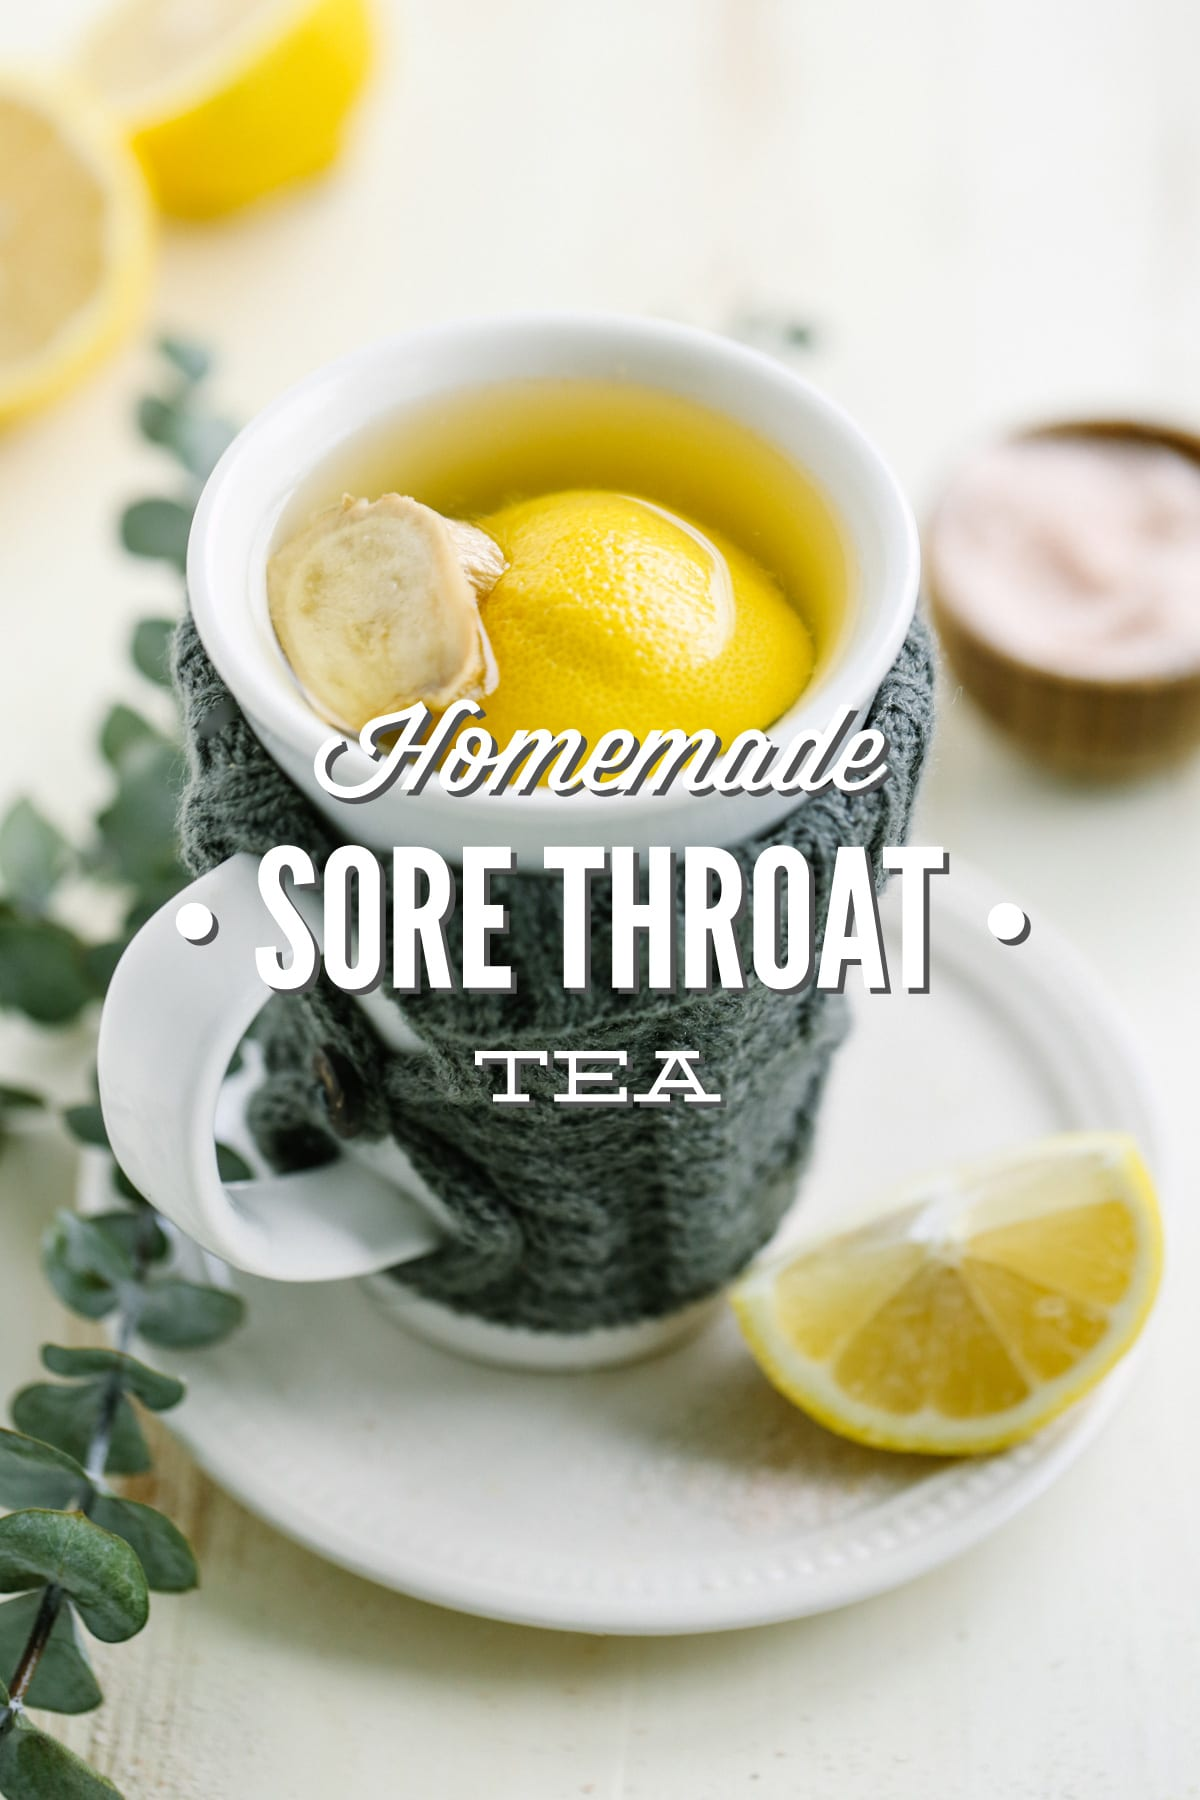 soothing honey and lemon sore throat tea - live simply